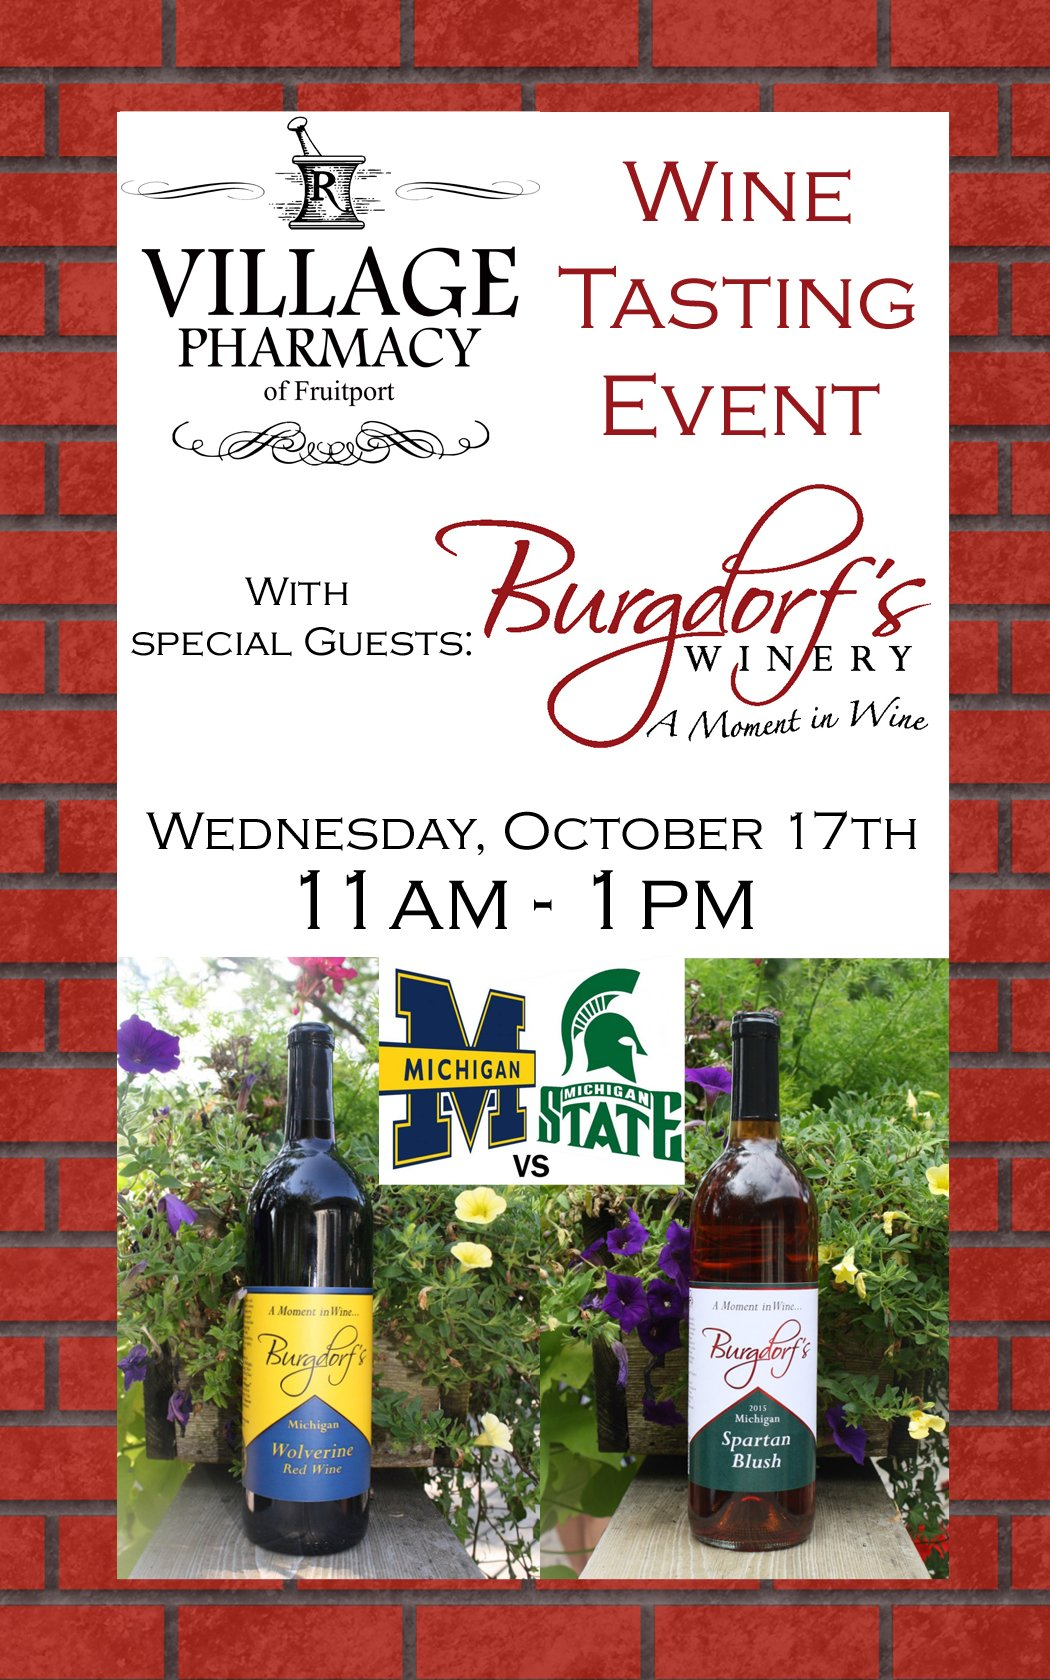 Oct 17 – Michigan / Michigan State – Village Pharmacy of Fruitport